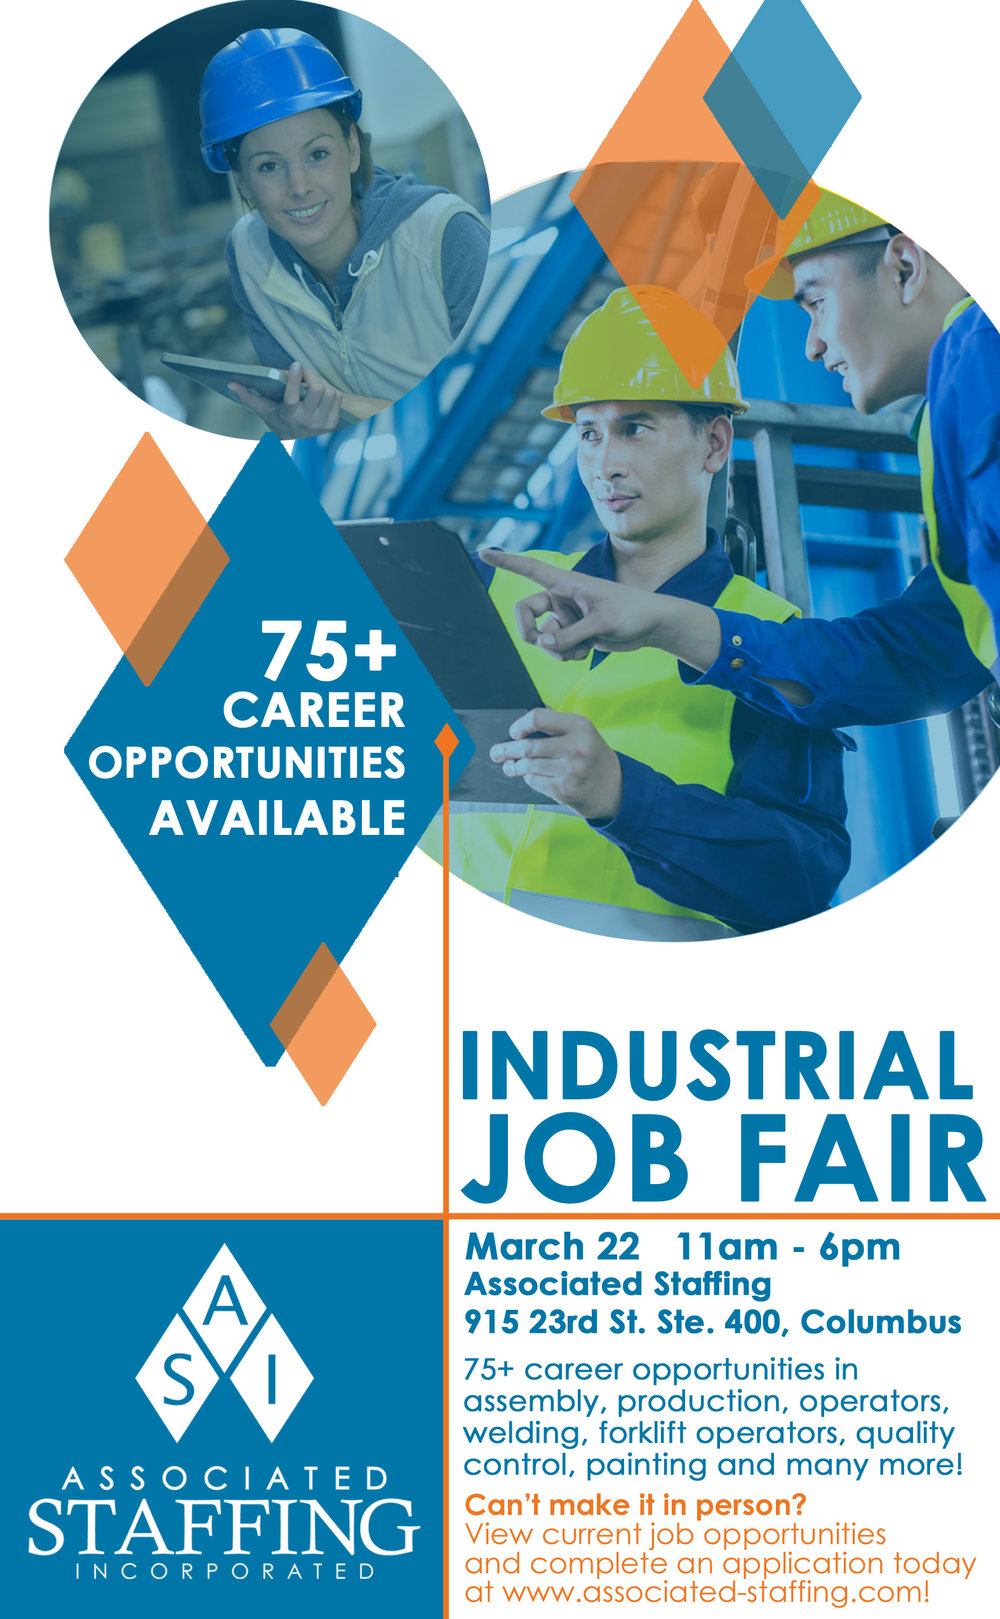 industrial job fair associated staffing inc make plans to join us on 22 in columbus for an industrial job fair apply online anytime at associated staffing com